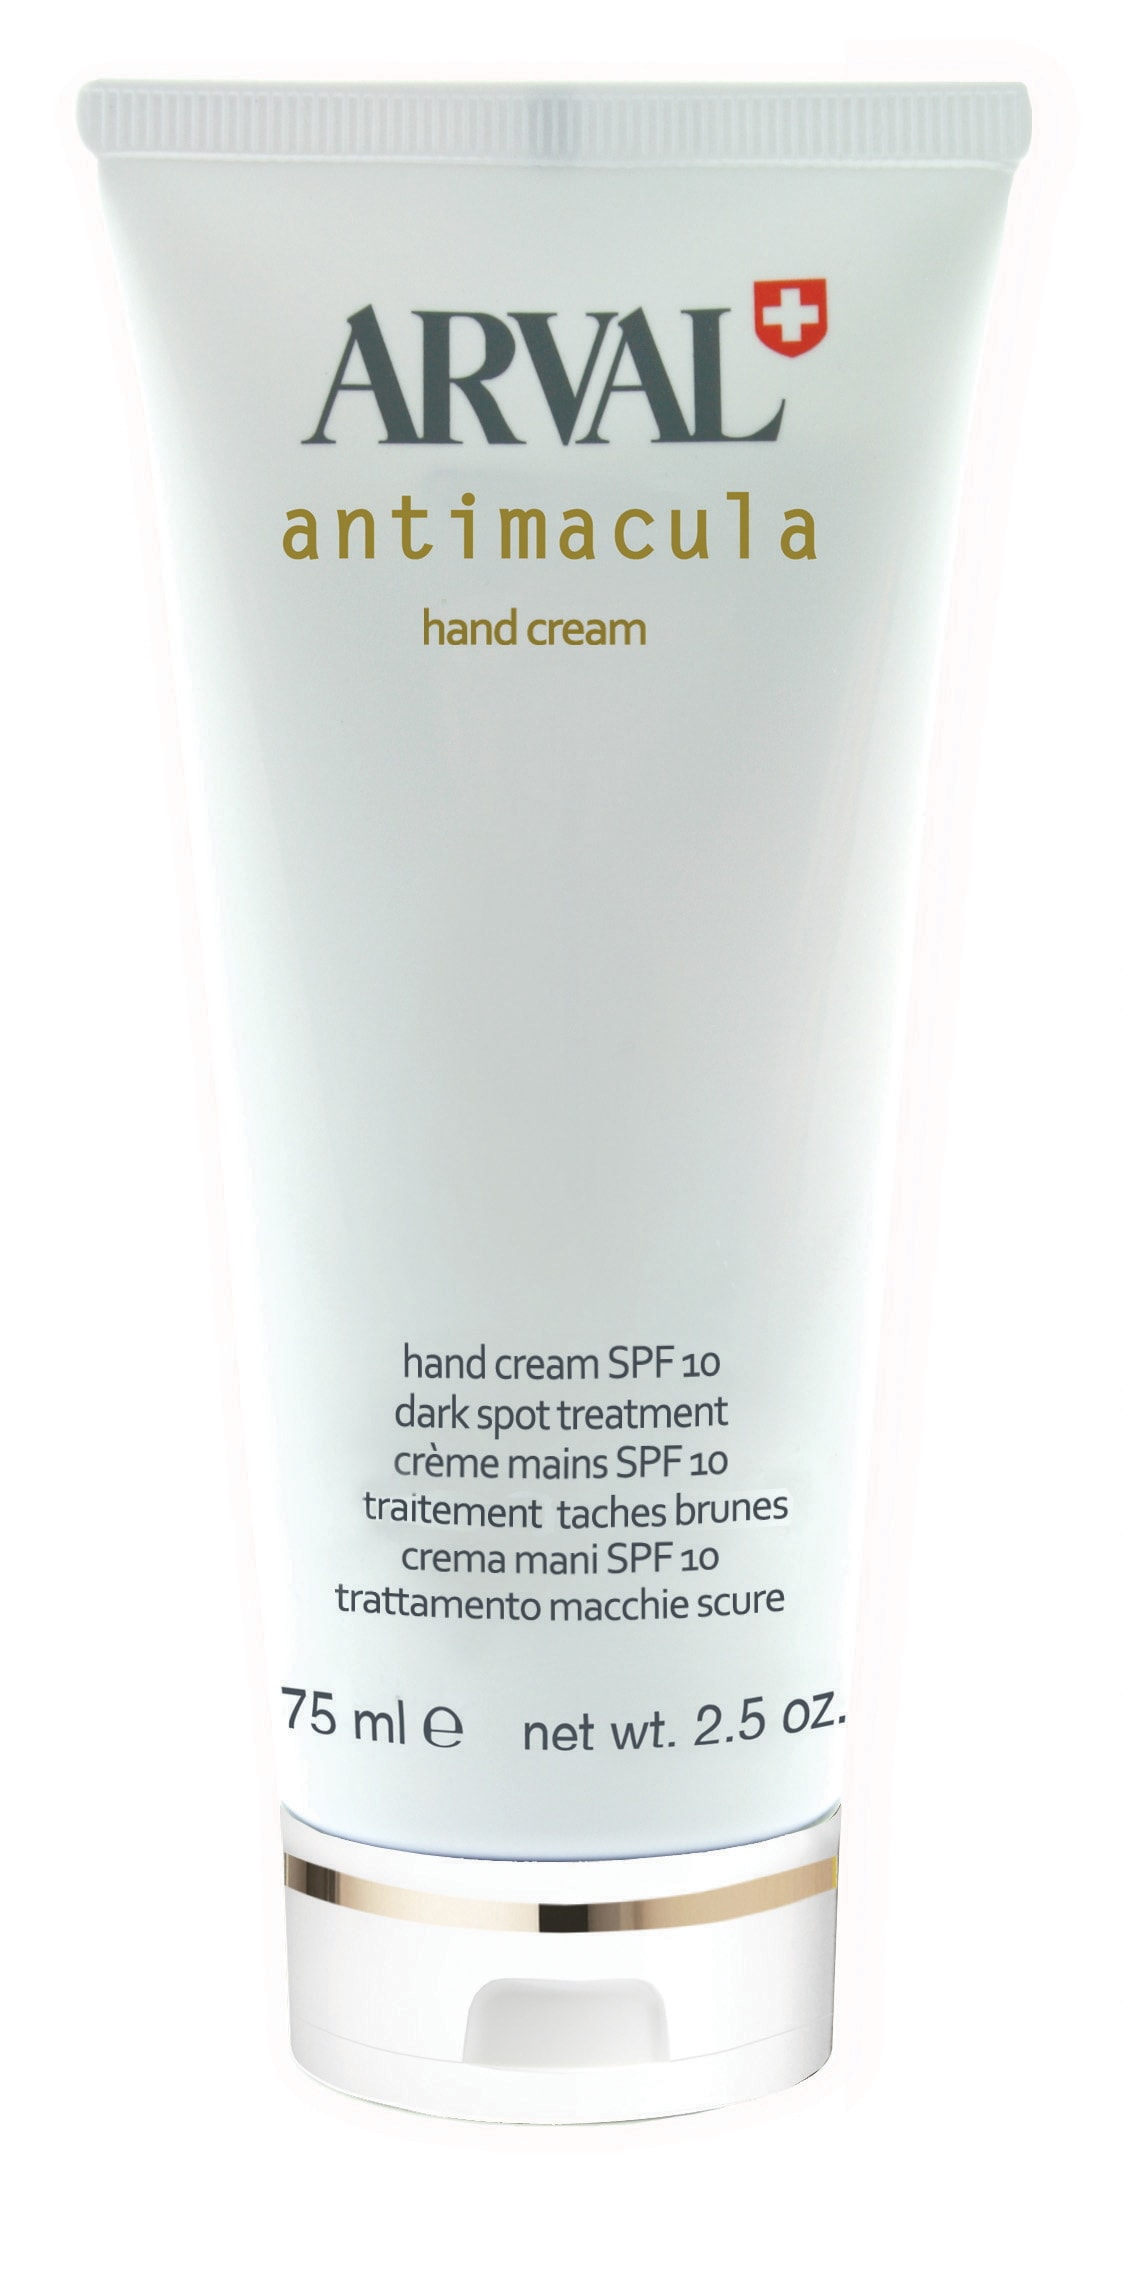 CREMA ARVAL ANTIMACULA hand cream tb 75ml